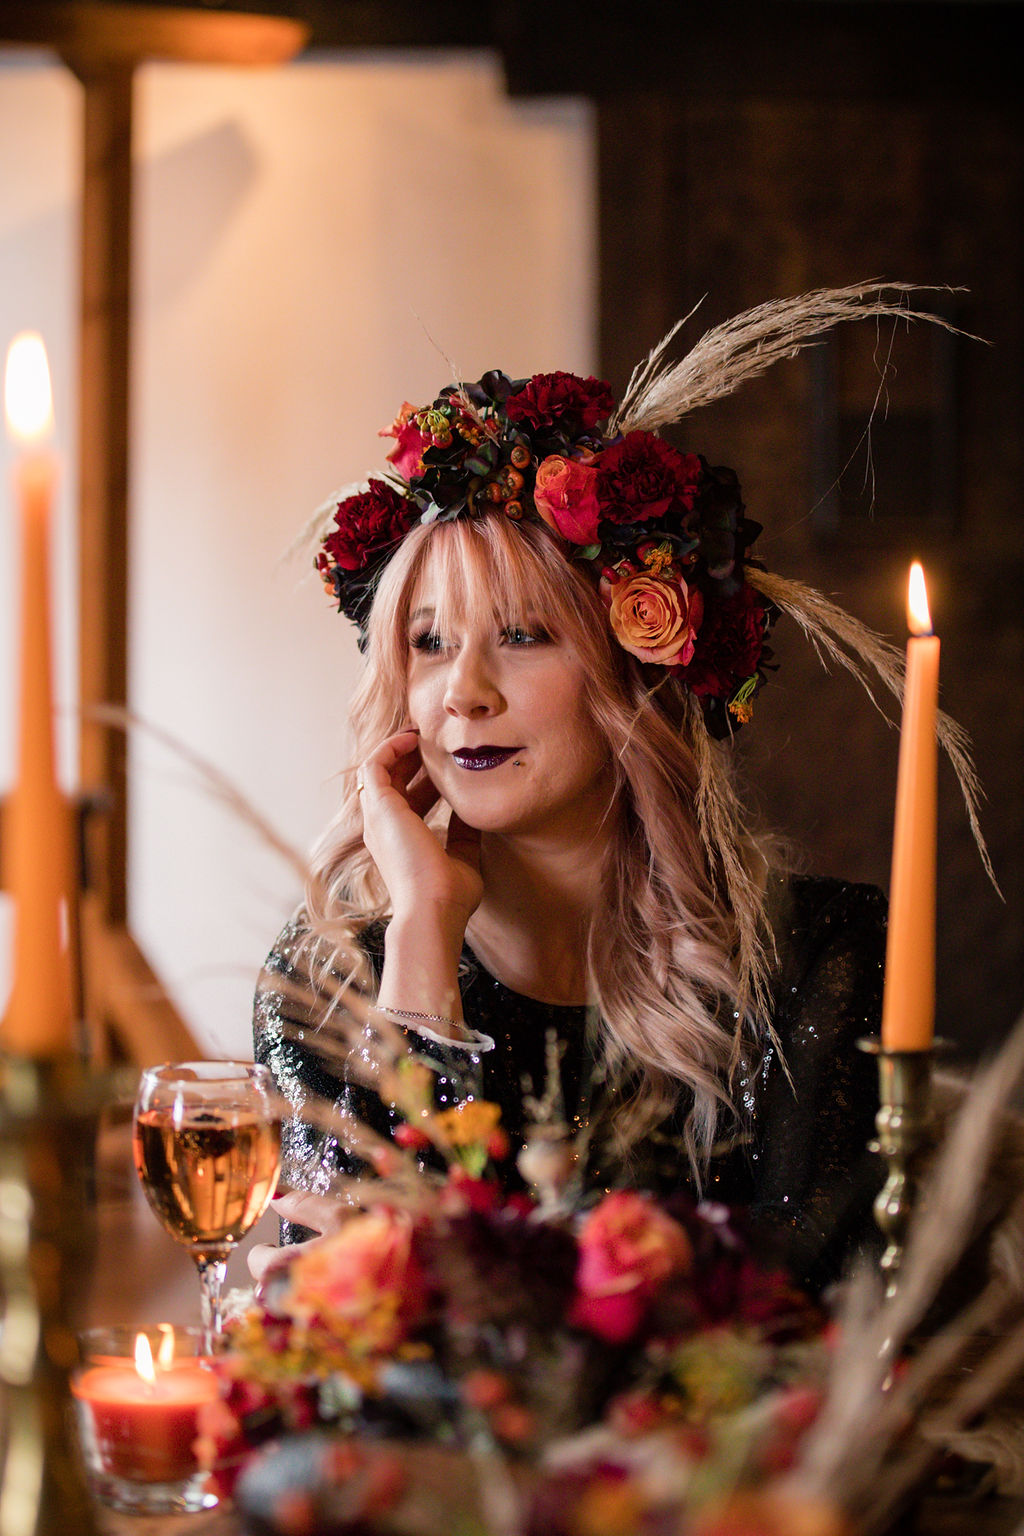 dark autumn wedding - edgy autumn wedding - gothic wedding - halloween wedding - wedding flower crown - autumn flower crown